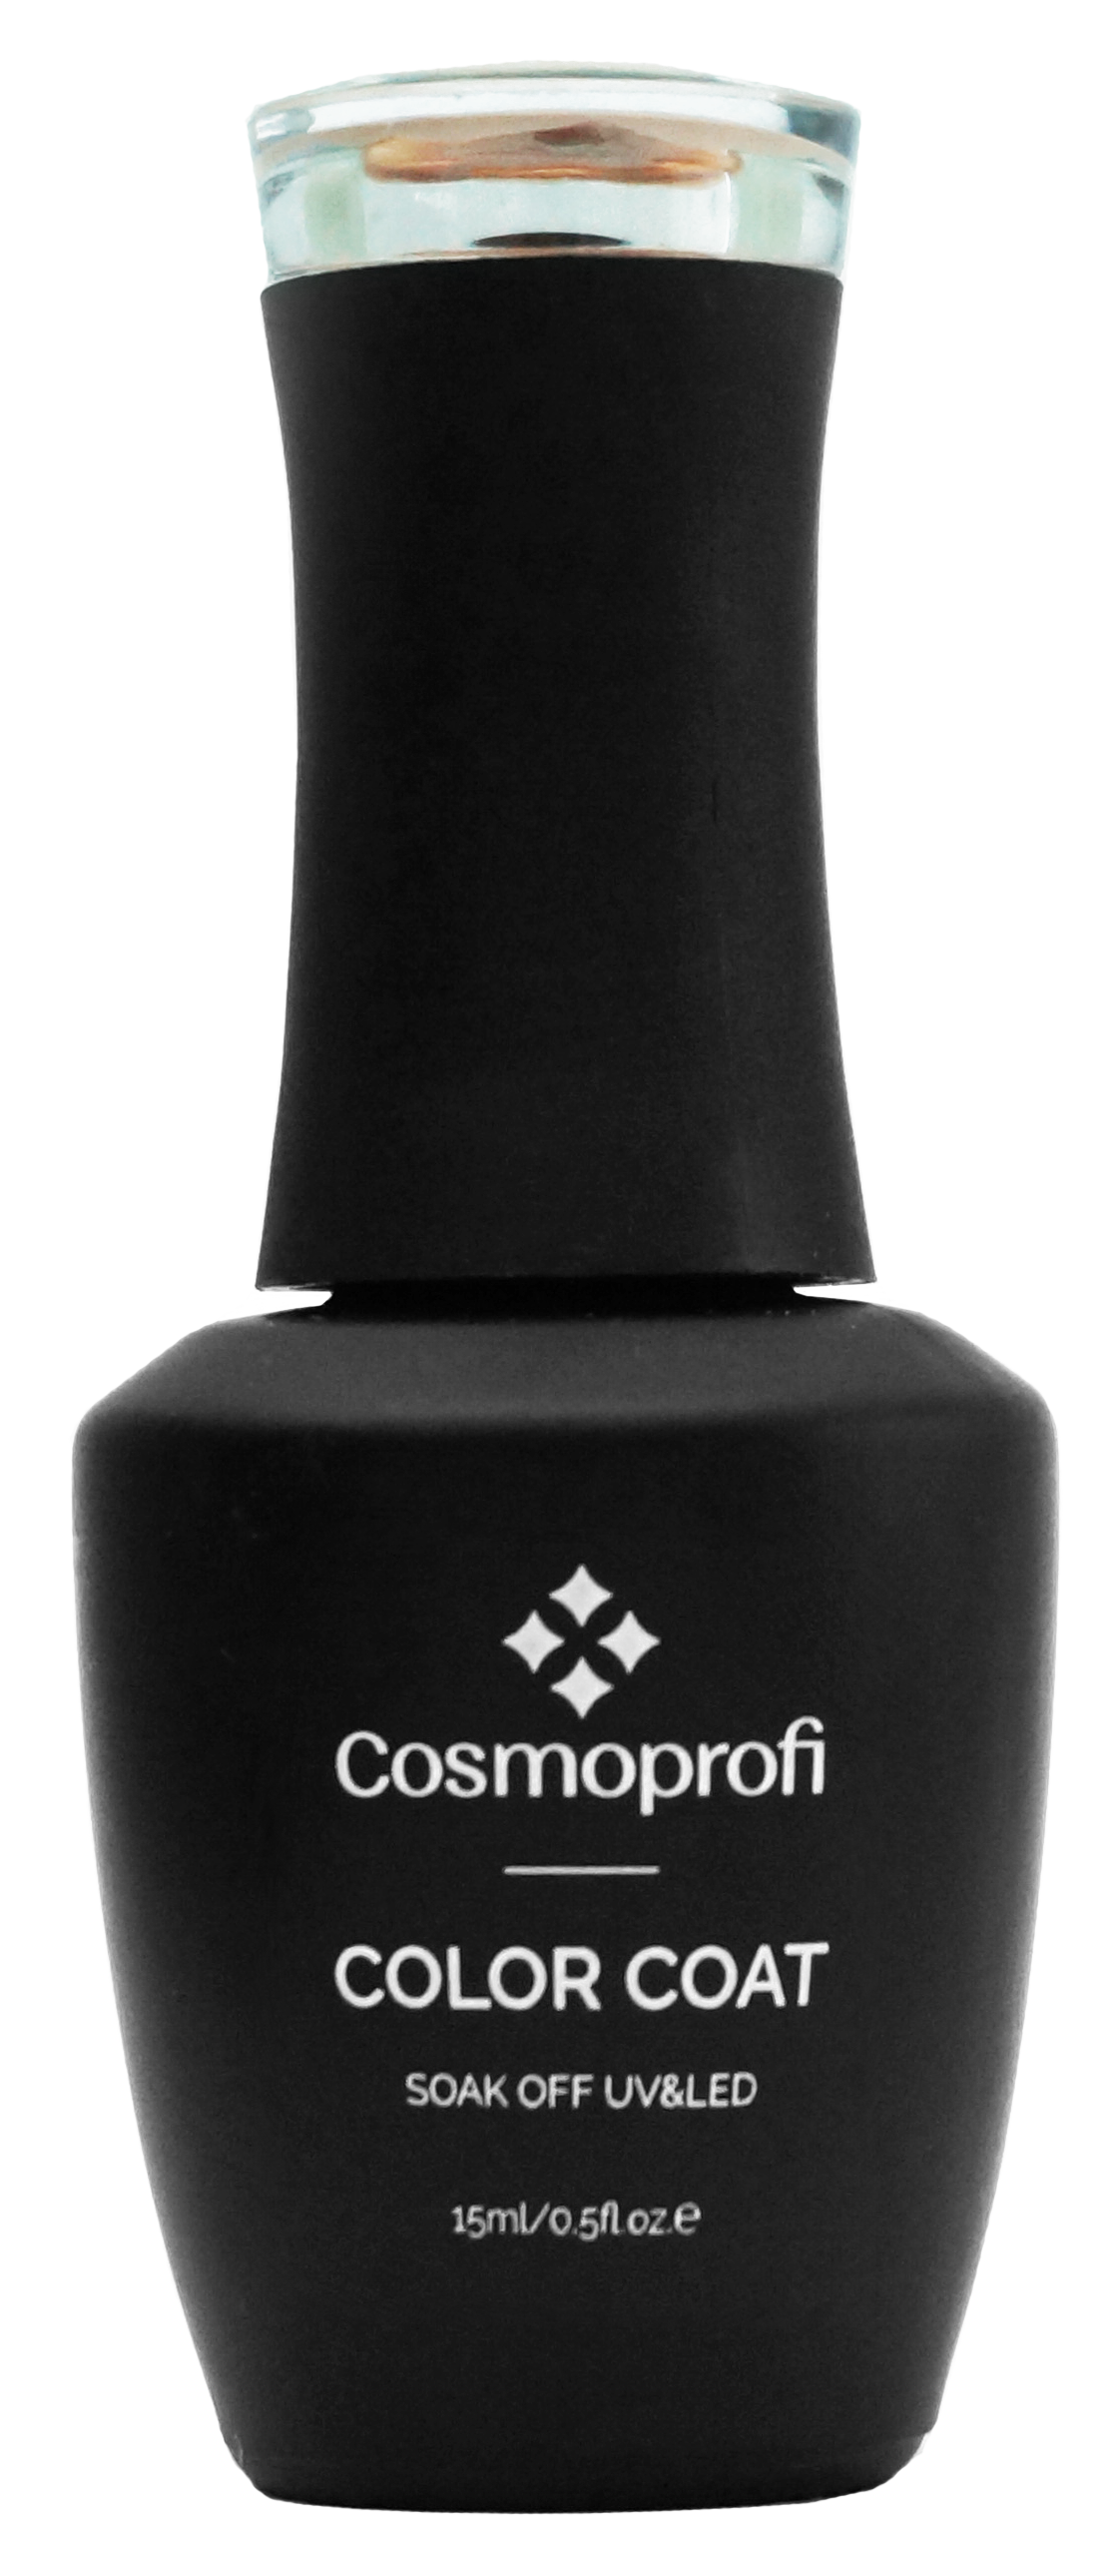 Гель-лак Cosmoprofi, Color coat № 241, 15 мл